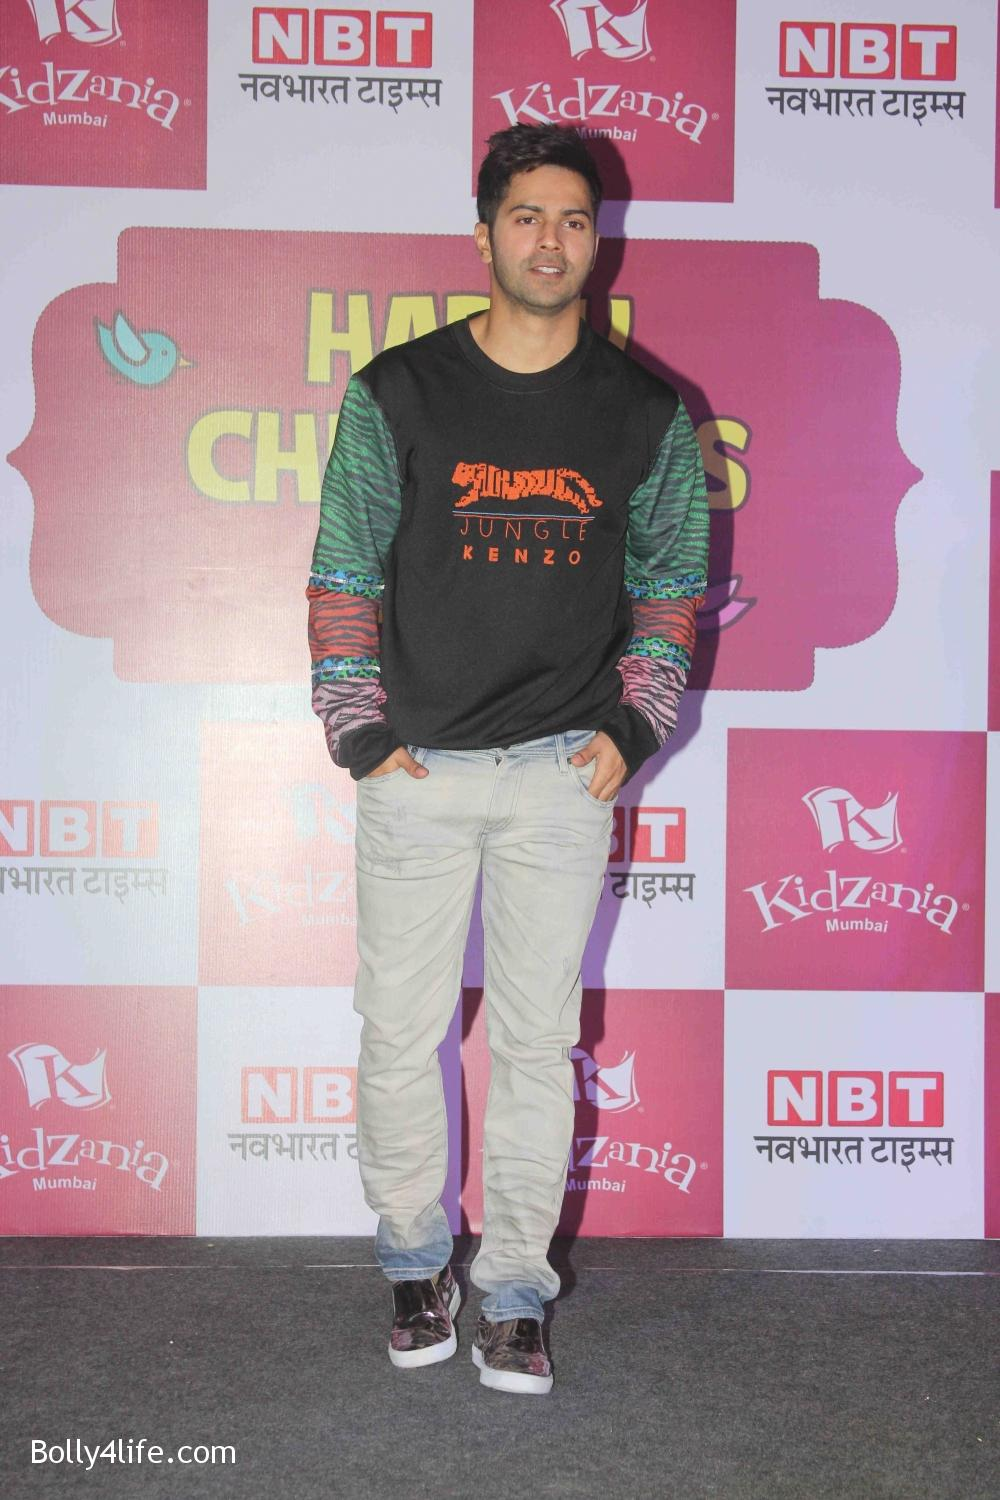 Varun-Dhawan-celebrates-Childrens-Day-at-KidZania-12.jpg